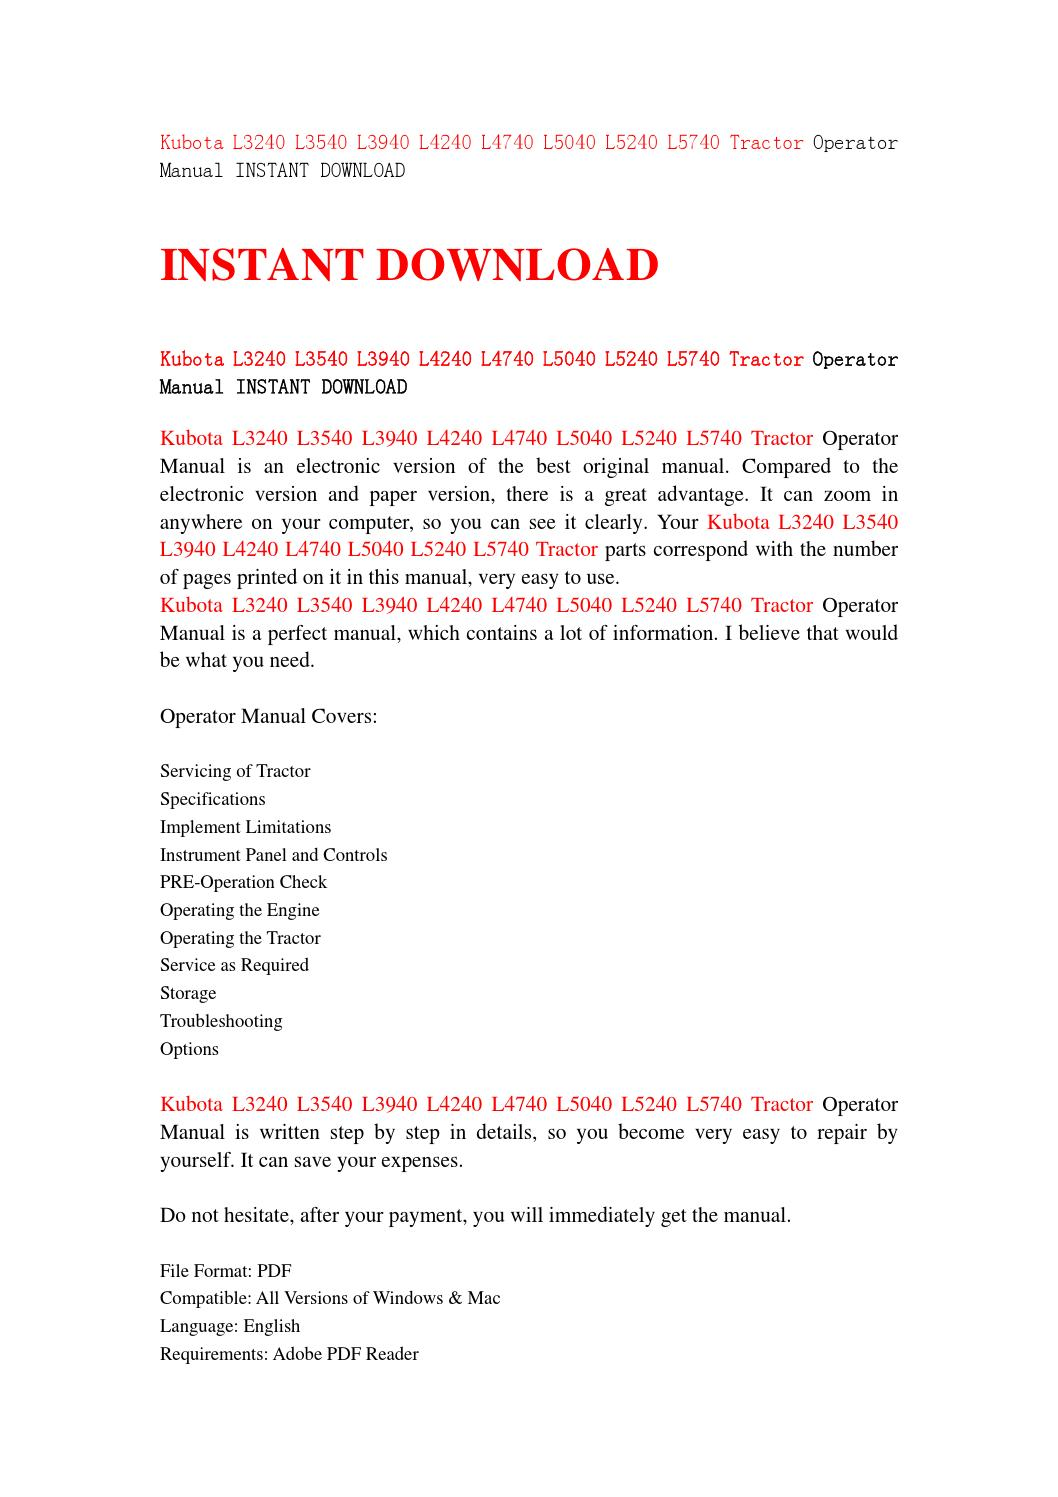 Kubota l3240 l3540 l3940 l4240 l4740 l5040 l5240 l5740 tractor operator  manual instant download by jsnehfbse - issuu